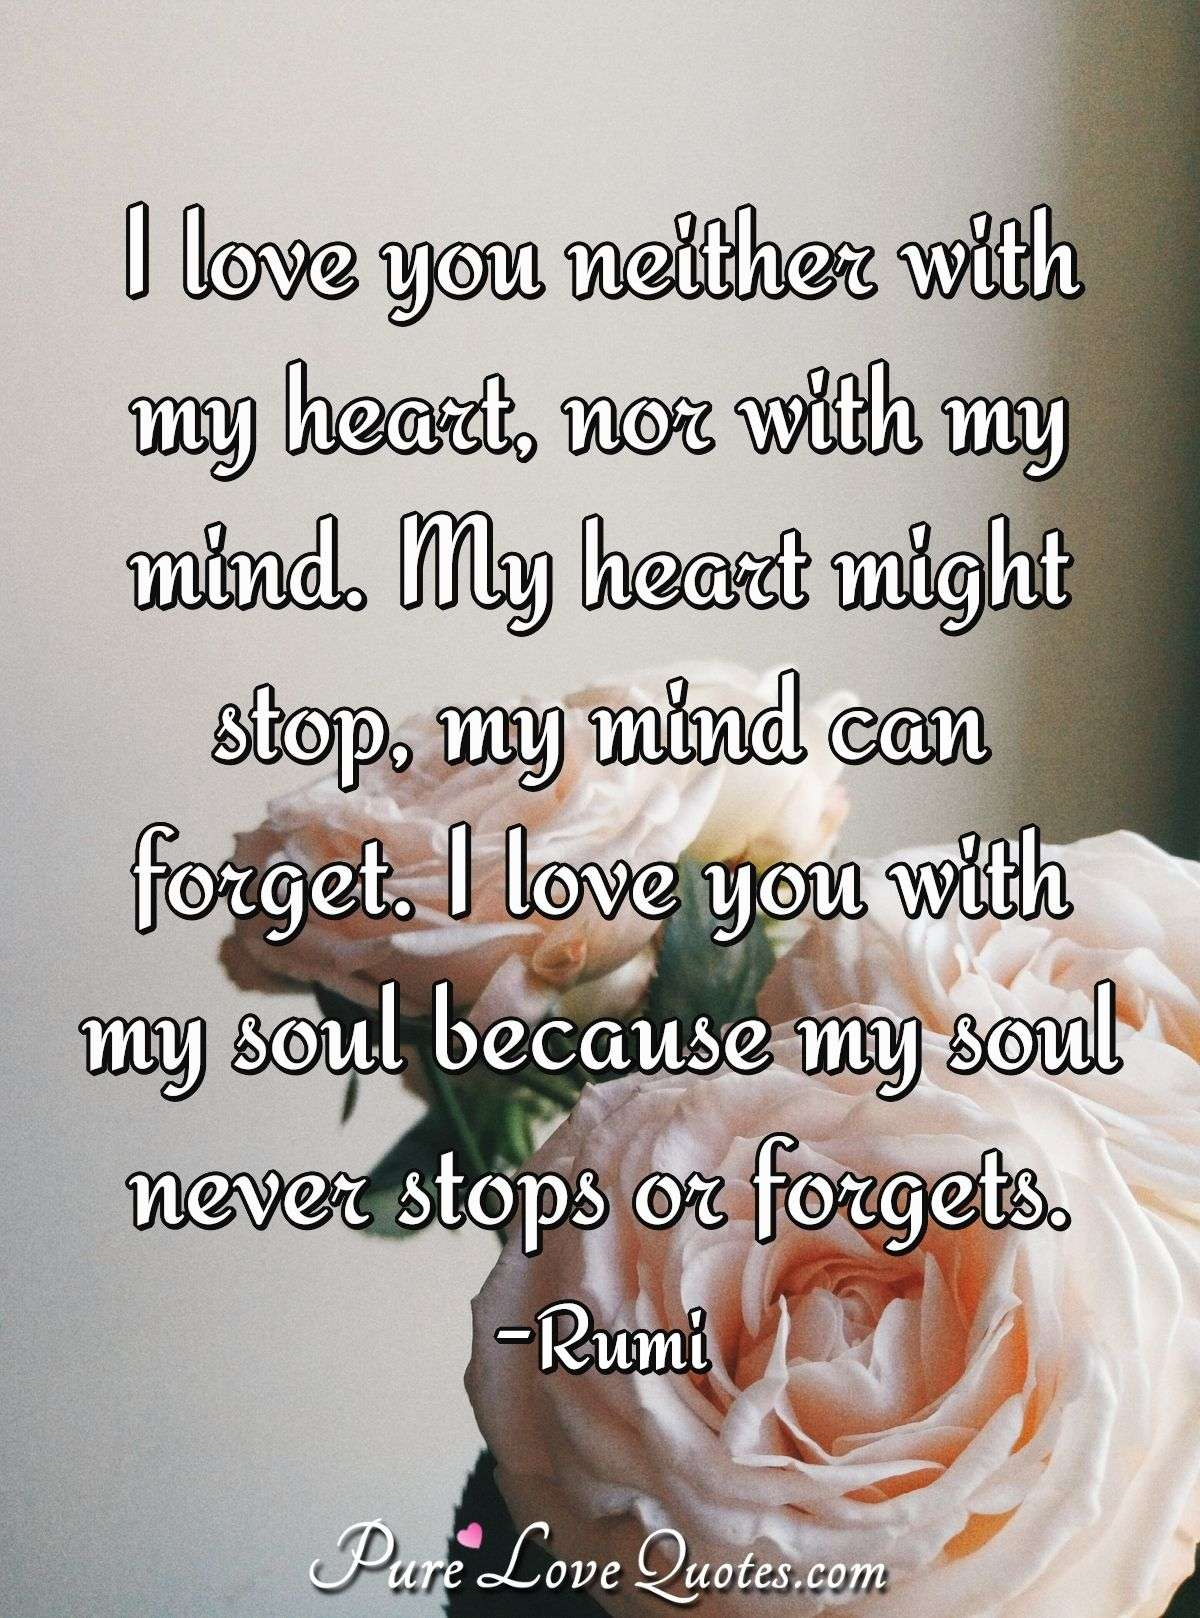 I love you neither with my heart, nor with my mind. My heart might stop, my mind can forget. I love you with my soul because my soul never stops or forgets. - Rumi